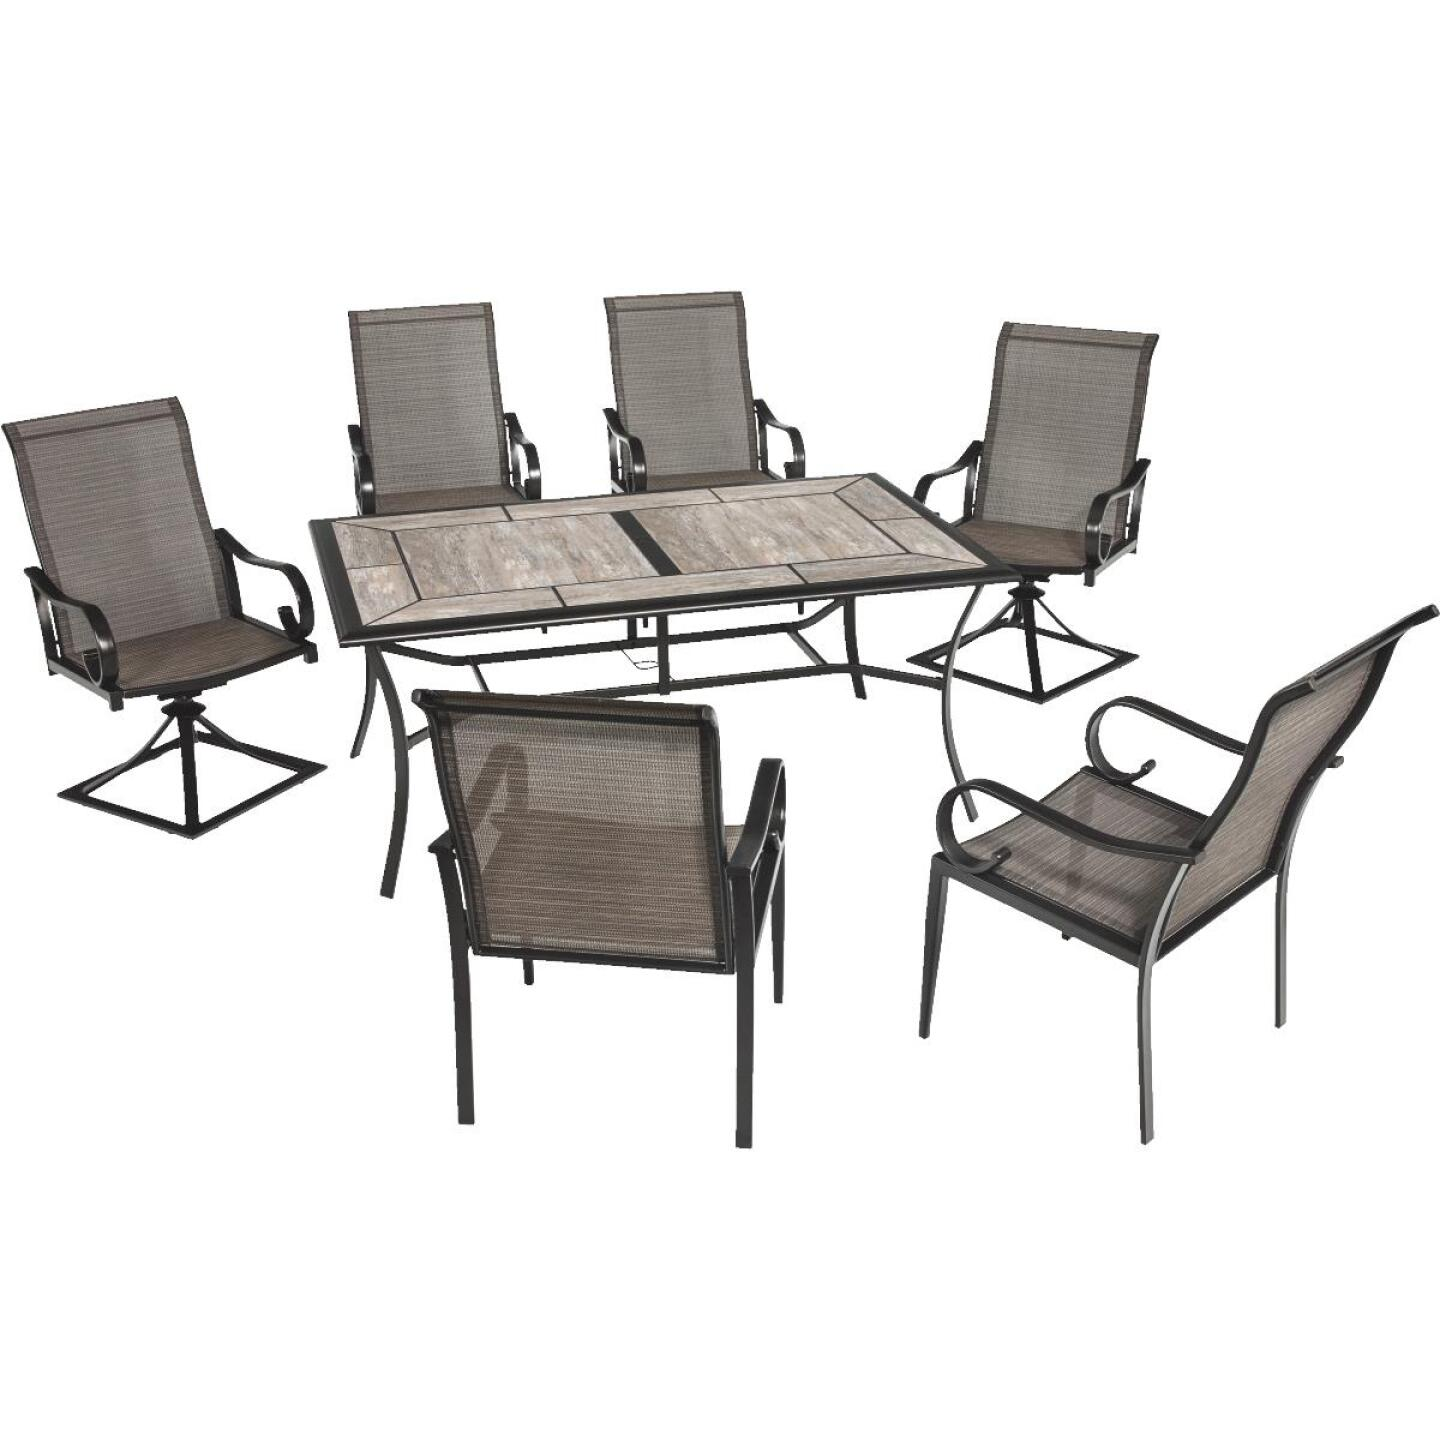 Outdoor Expressions Berkshire 7-Piece Dining Set Image 335